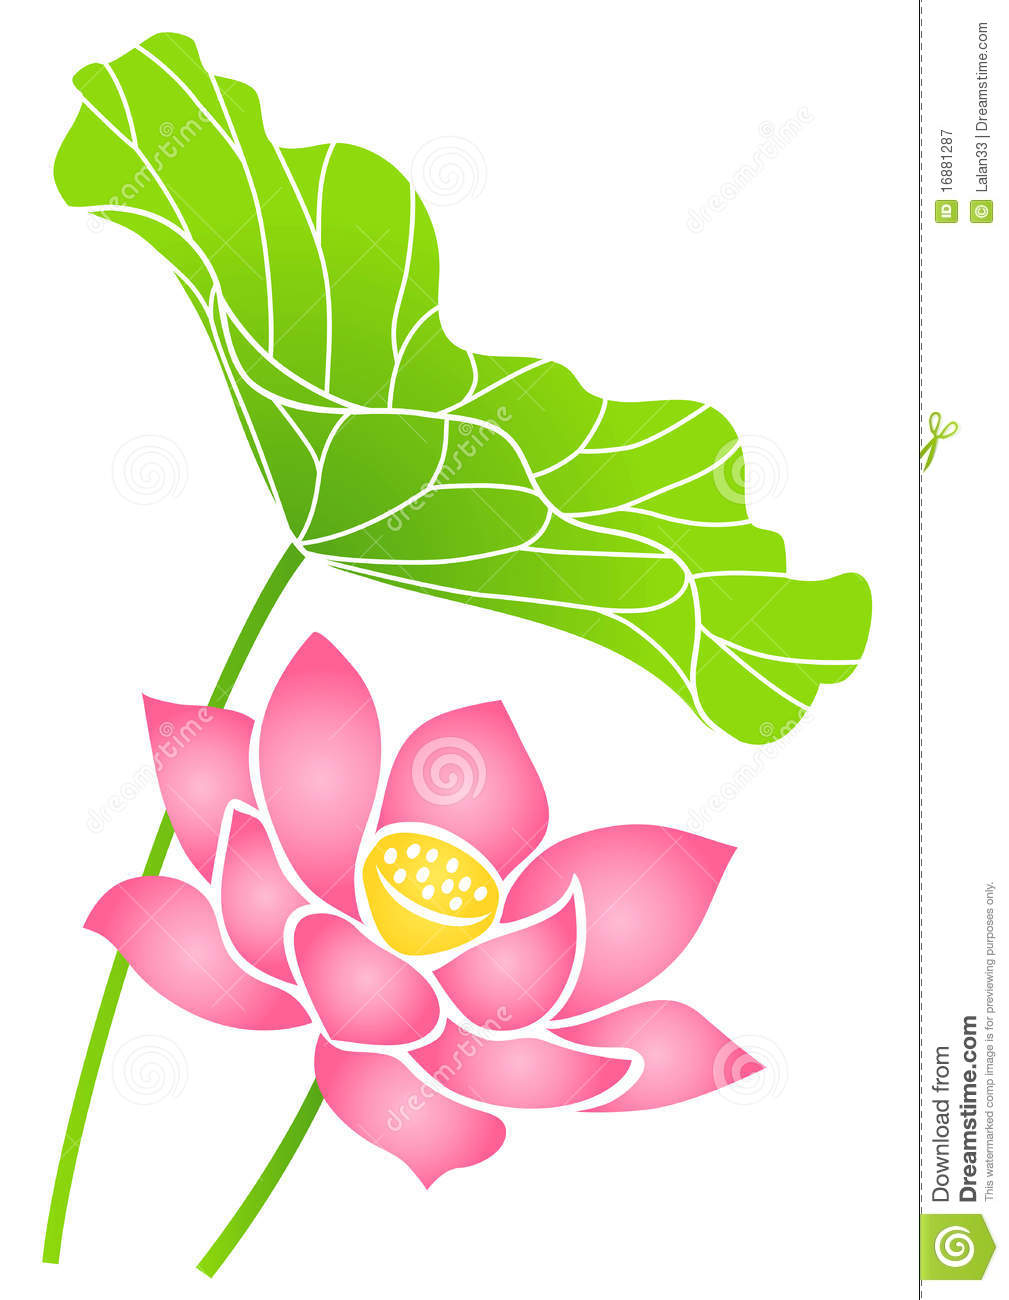 Lotus Flower Stock Vector Illustration Of Aquatic Leaf 16881287